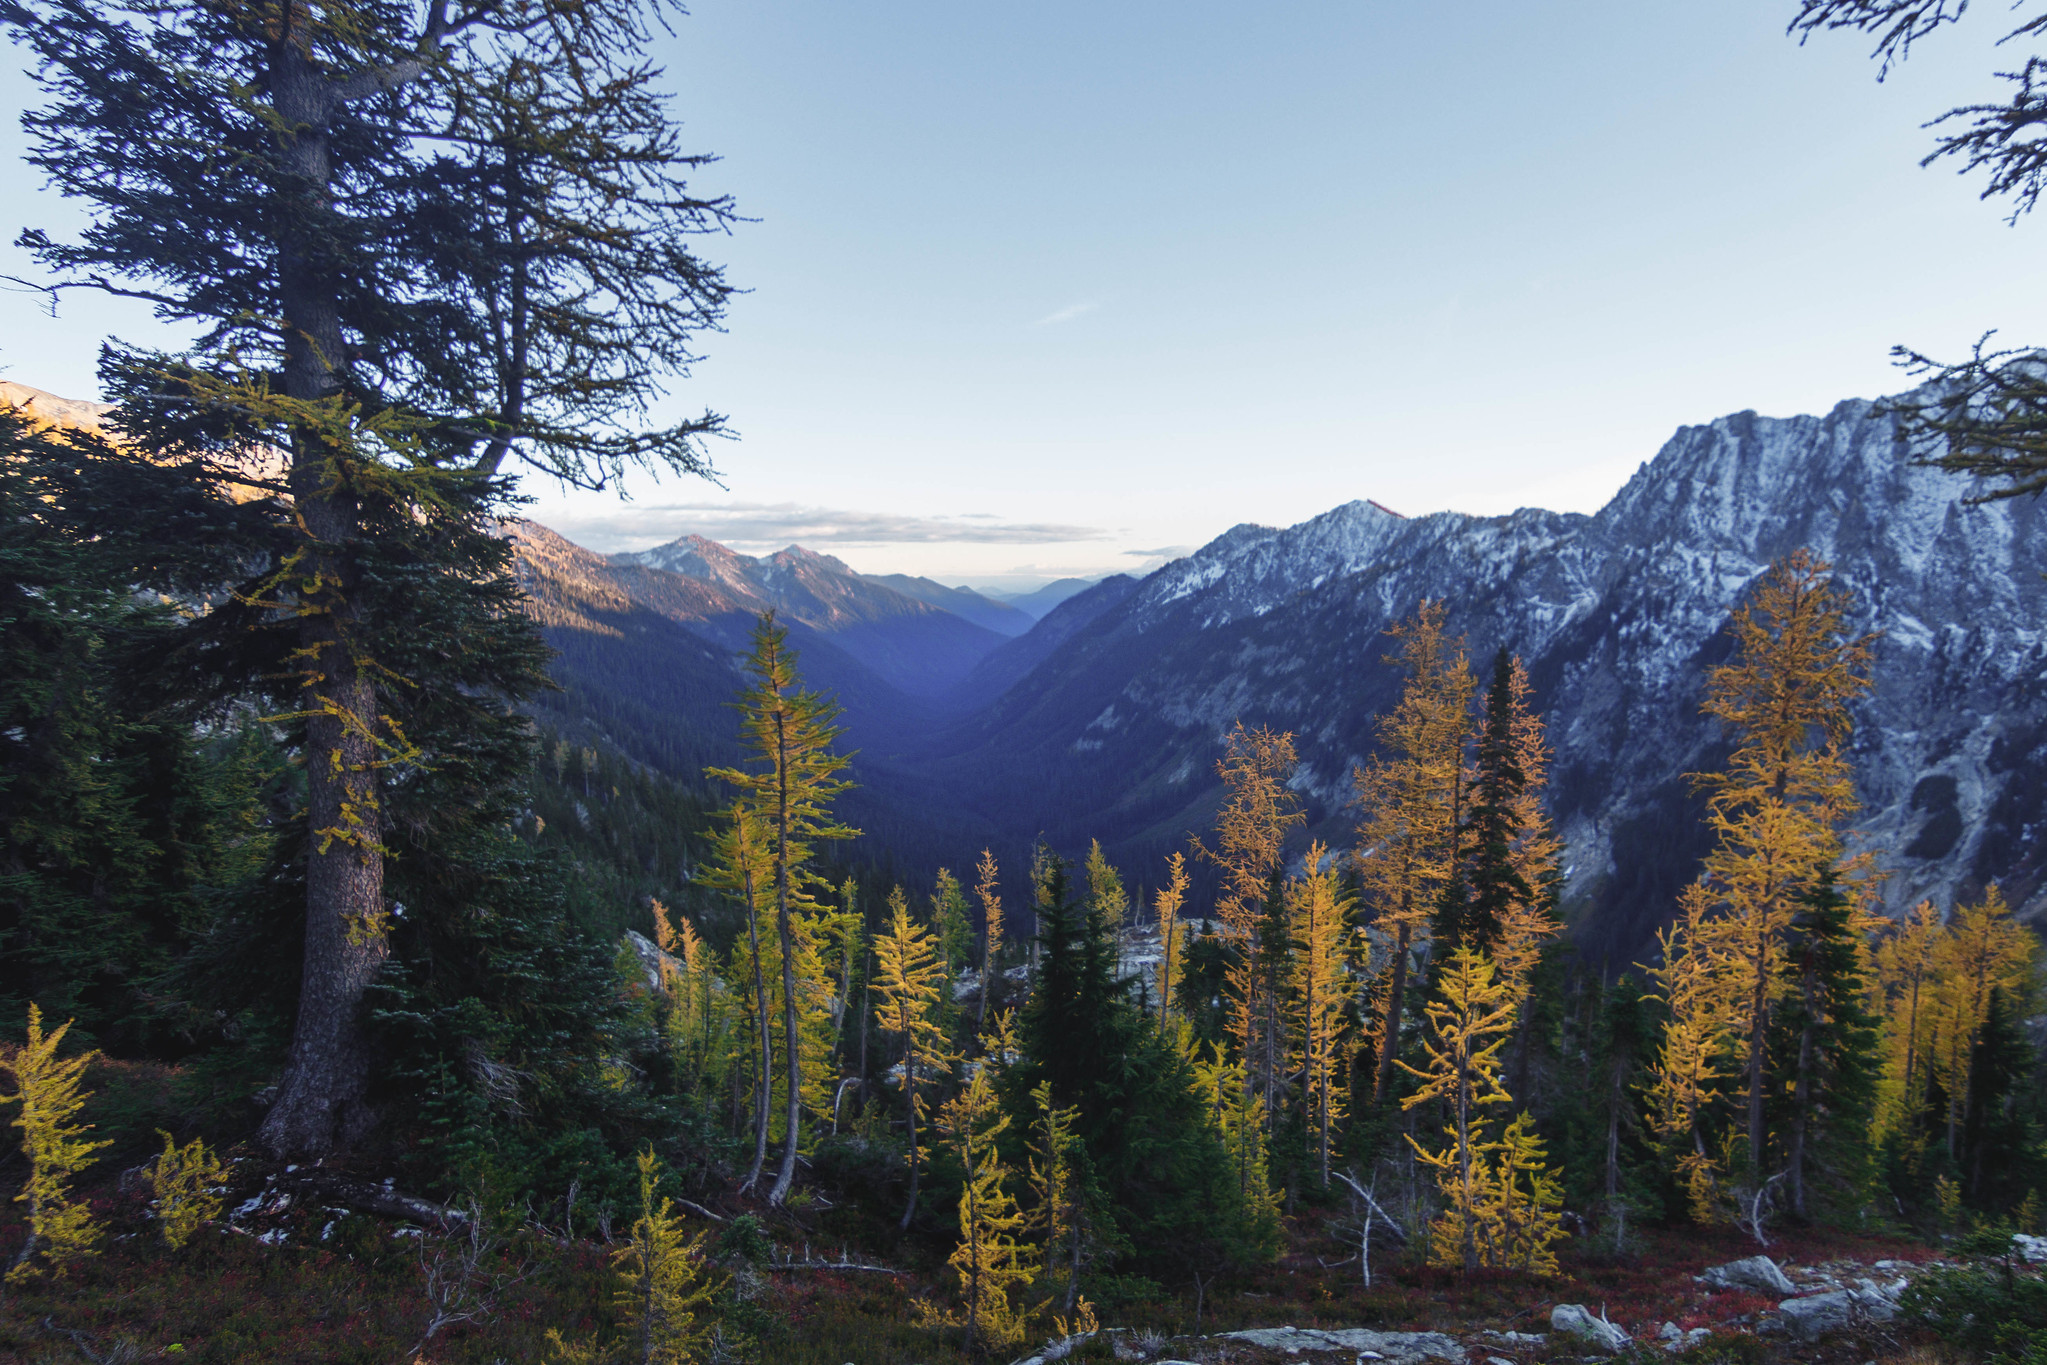 Phelps Creek Valley before sunset